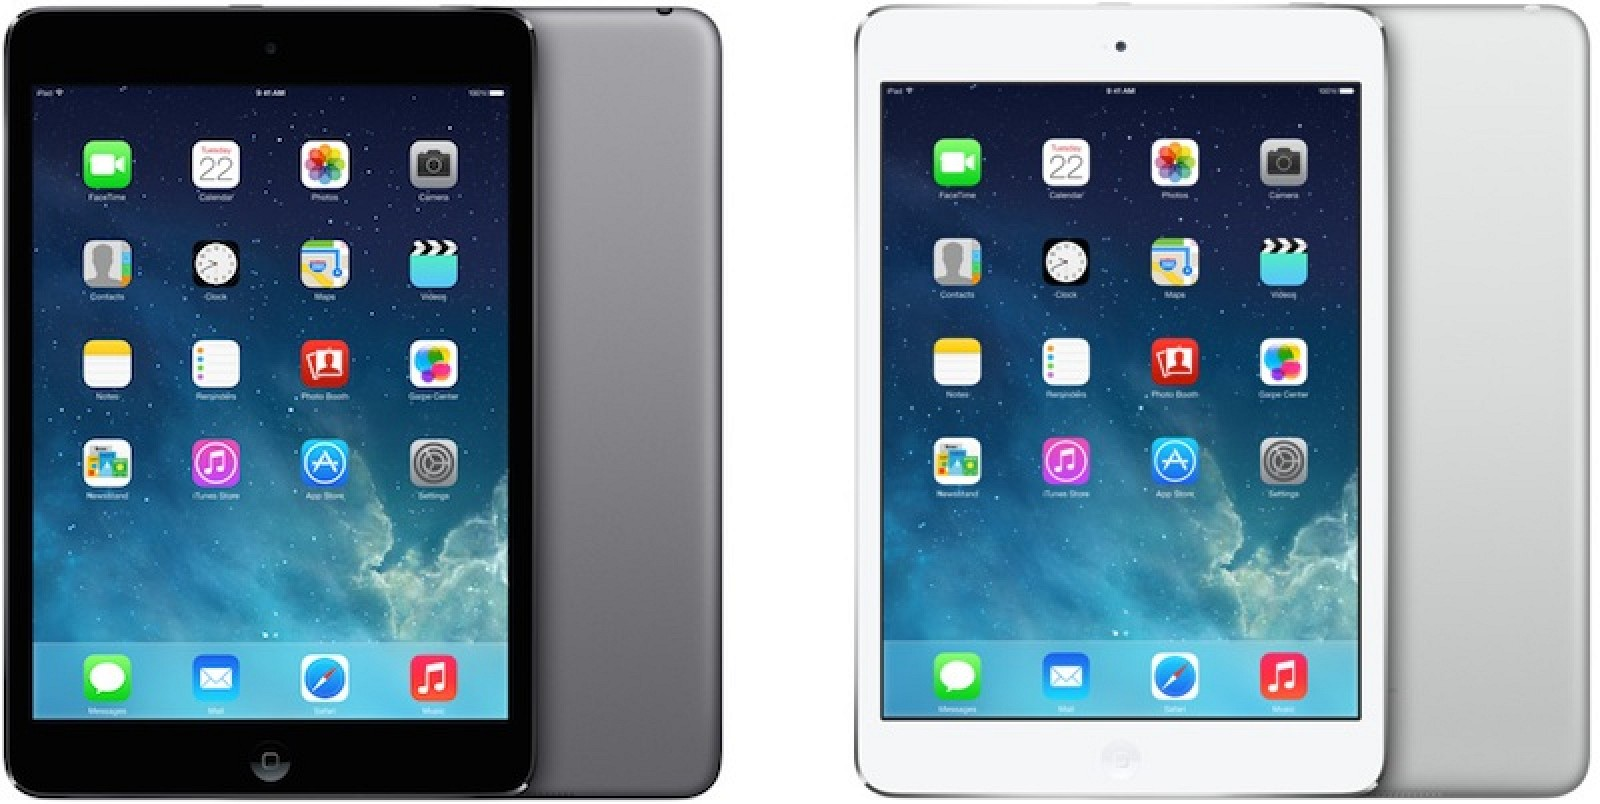 QnA VBage New 10-Inch iPad and Cheaper iPad Mini Coming 'As Early As This Spring'